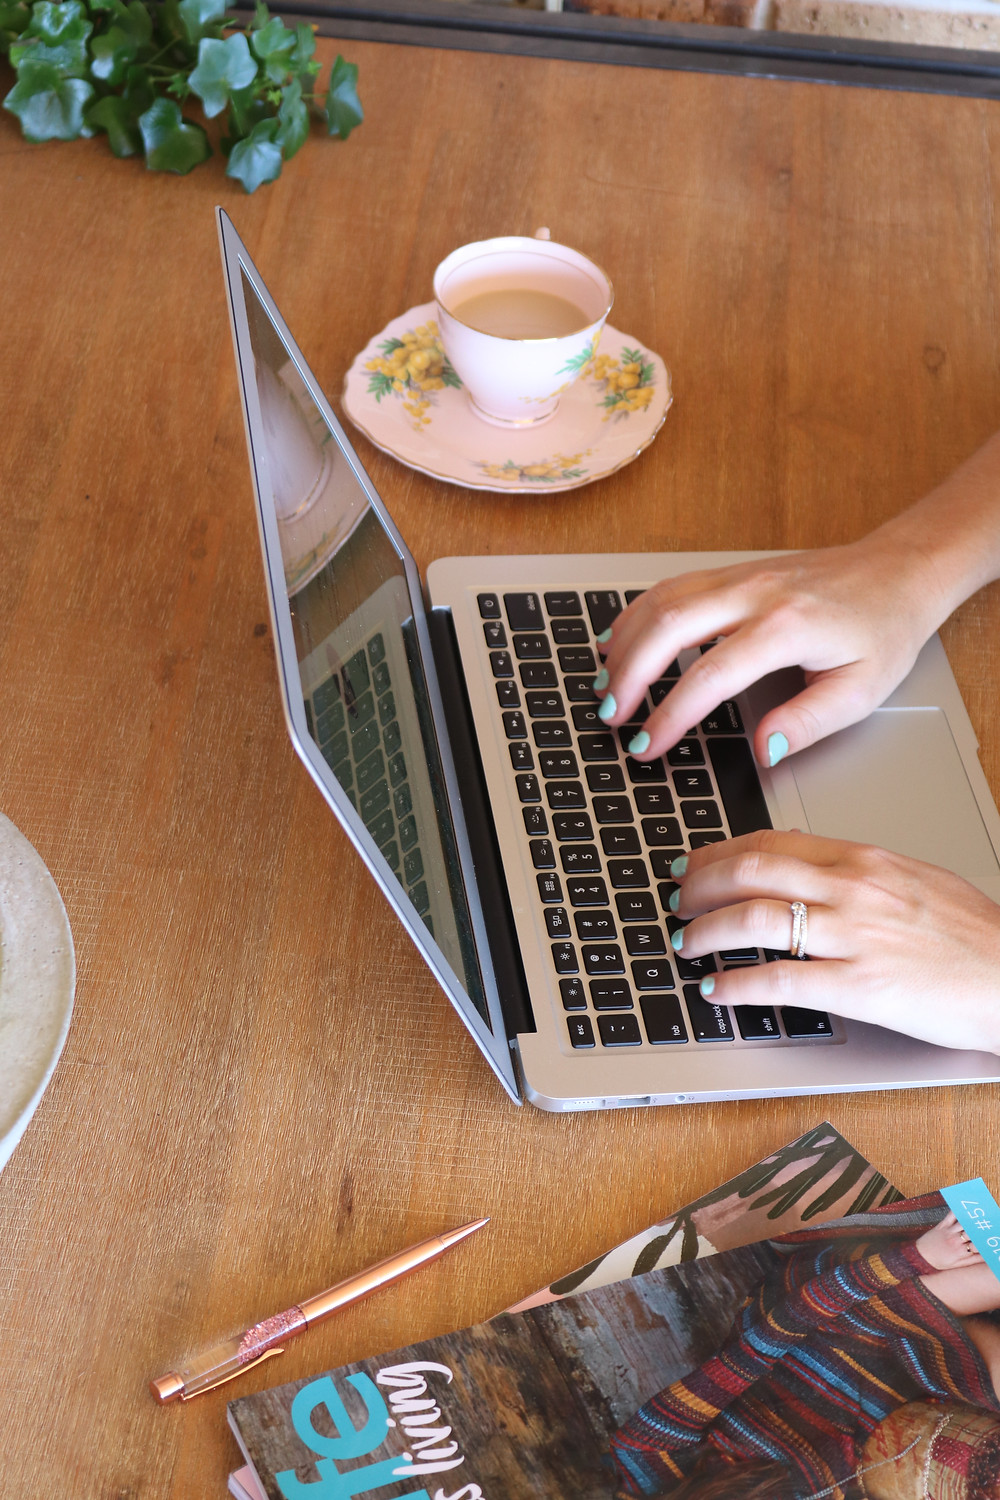 Lady typing on laptop with cup of tea beside her